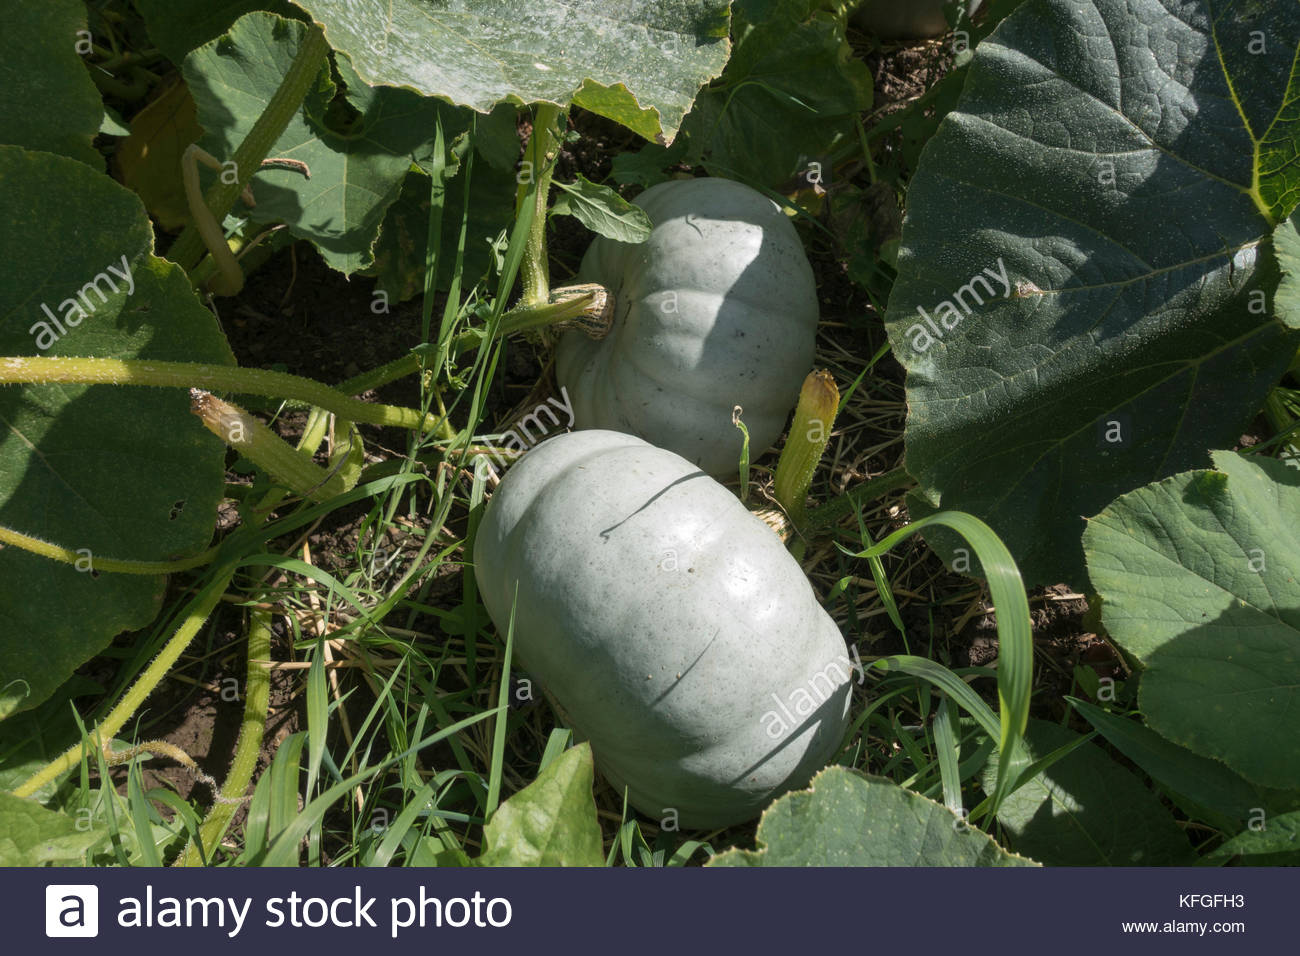 organically grown grey Pumpkins of the variety Cucurbita Maxima - Stock Image